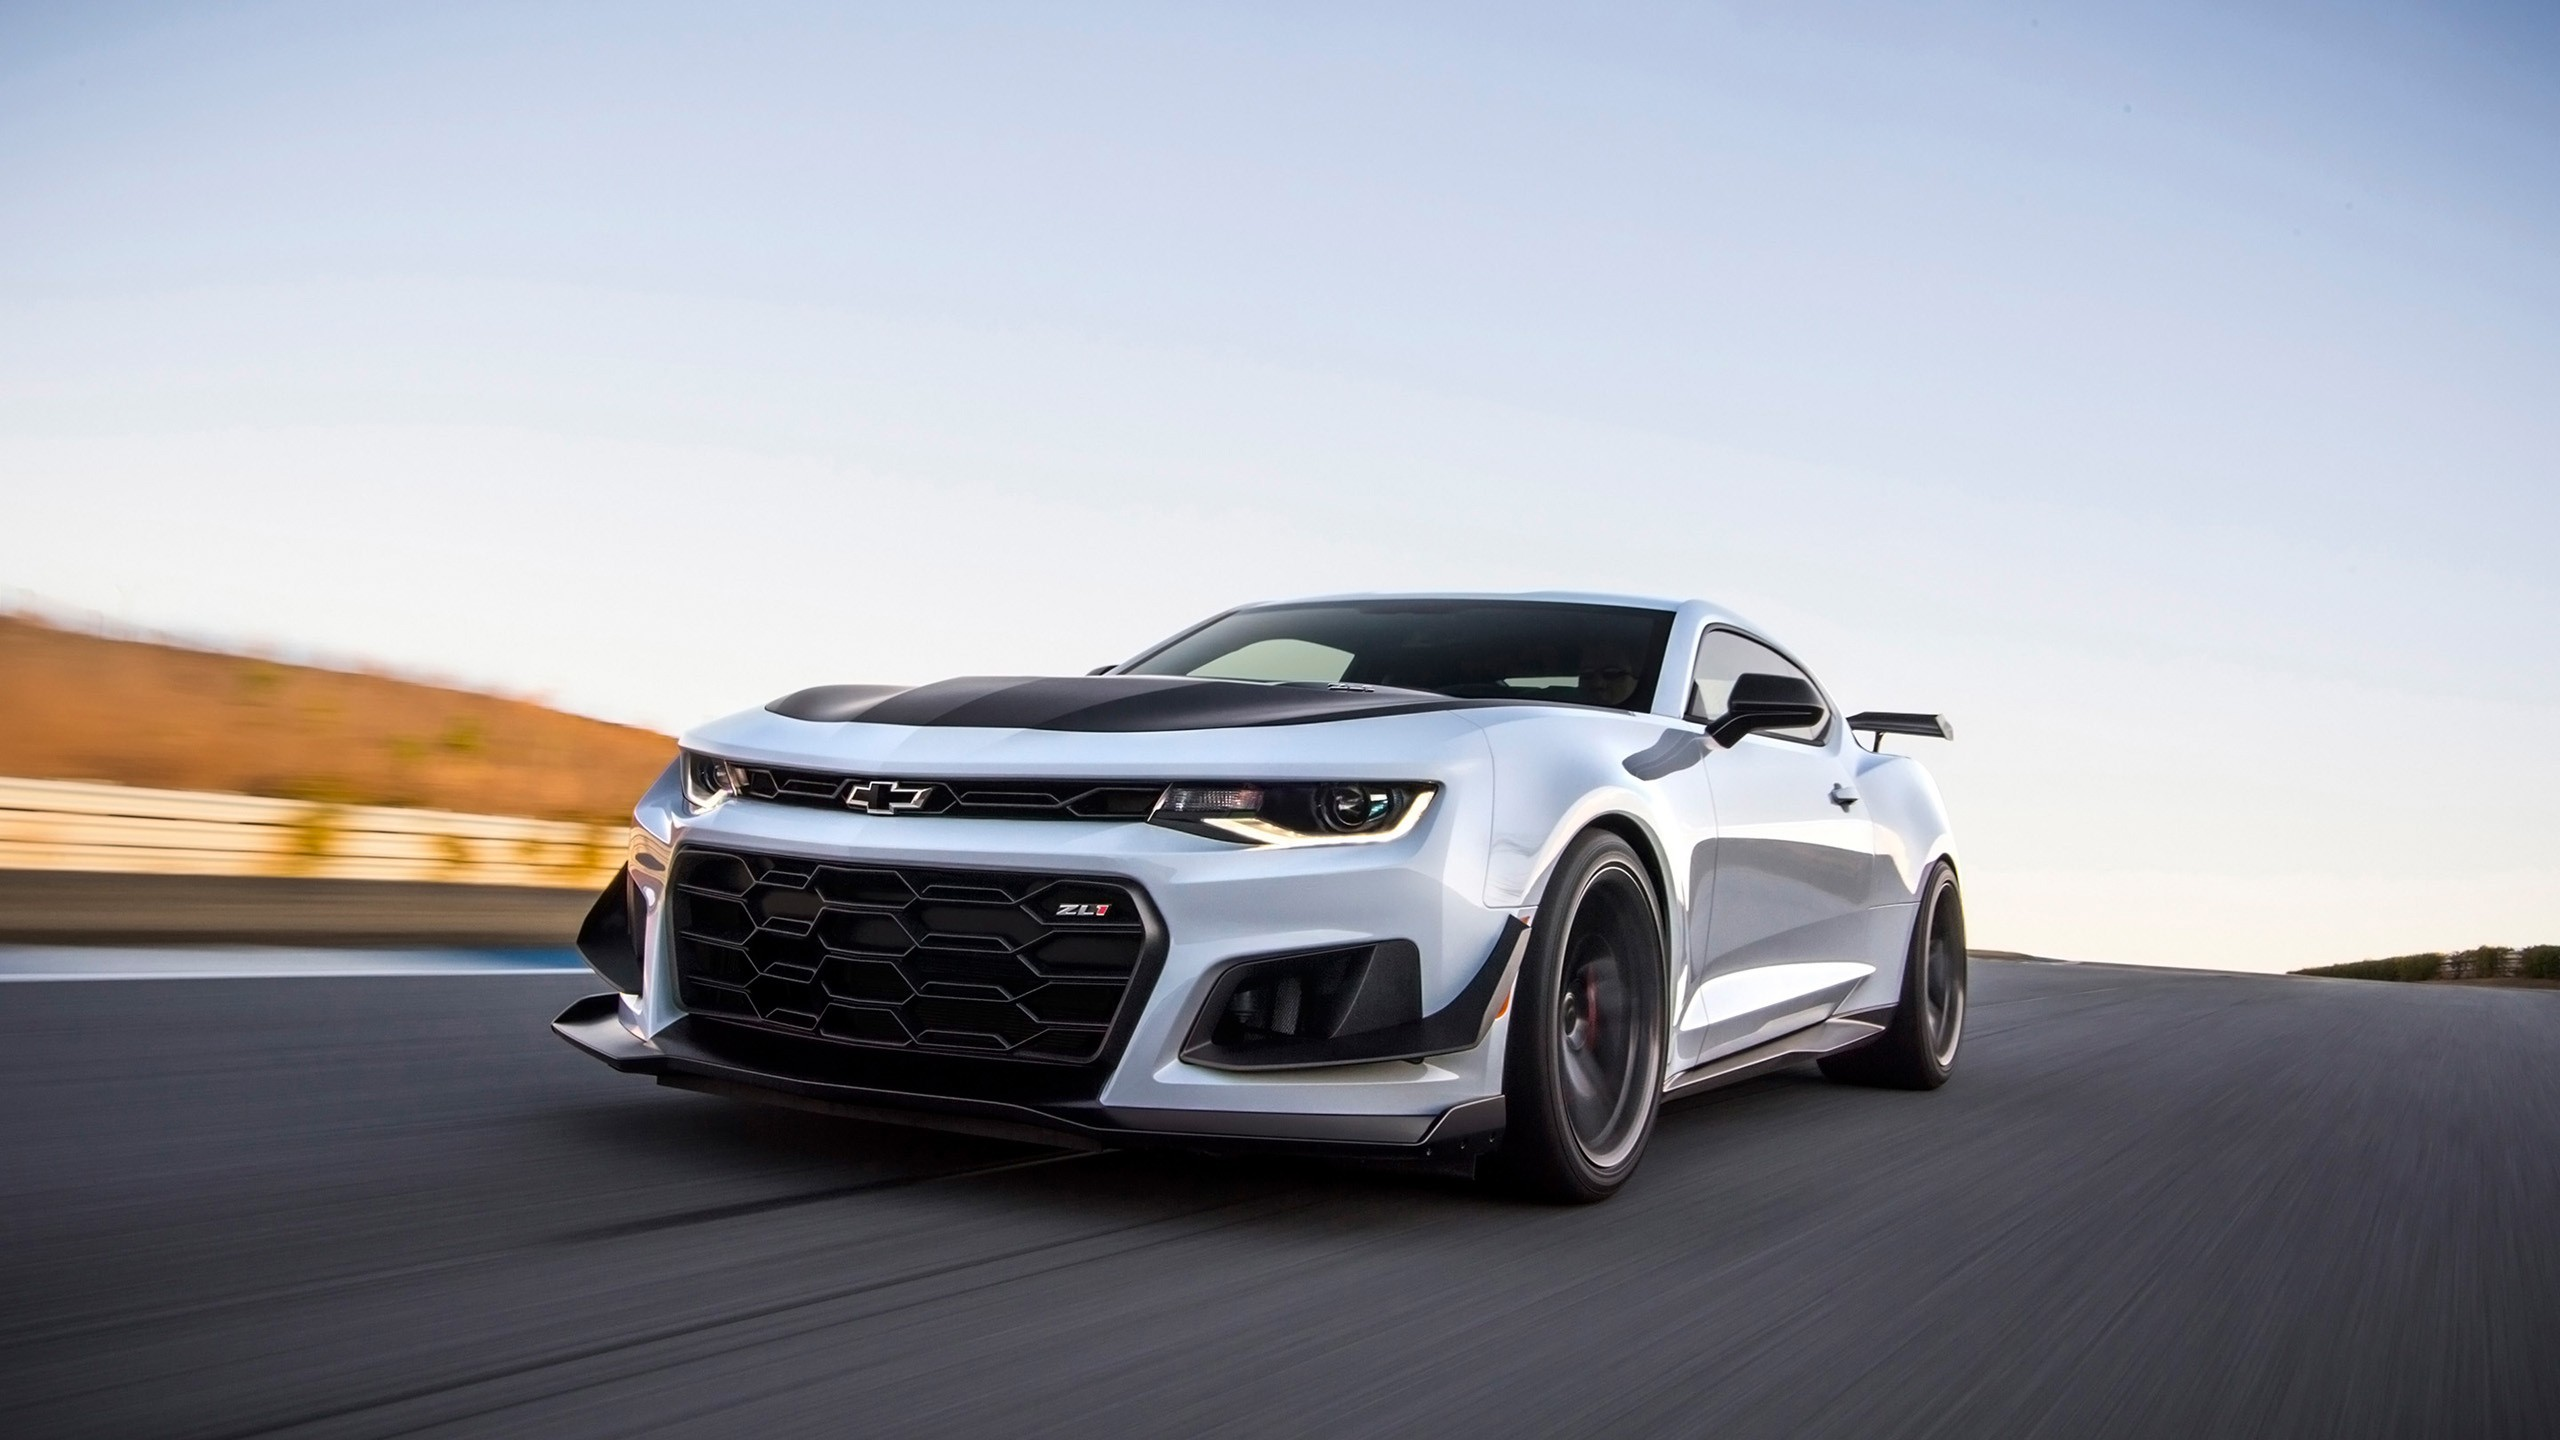 camaro chevrolet zl1 1le wallpapers hd 1440 tags